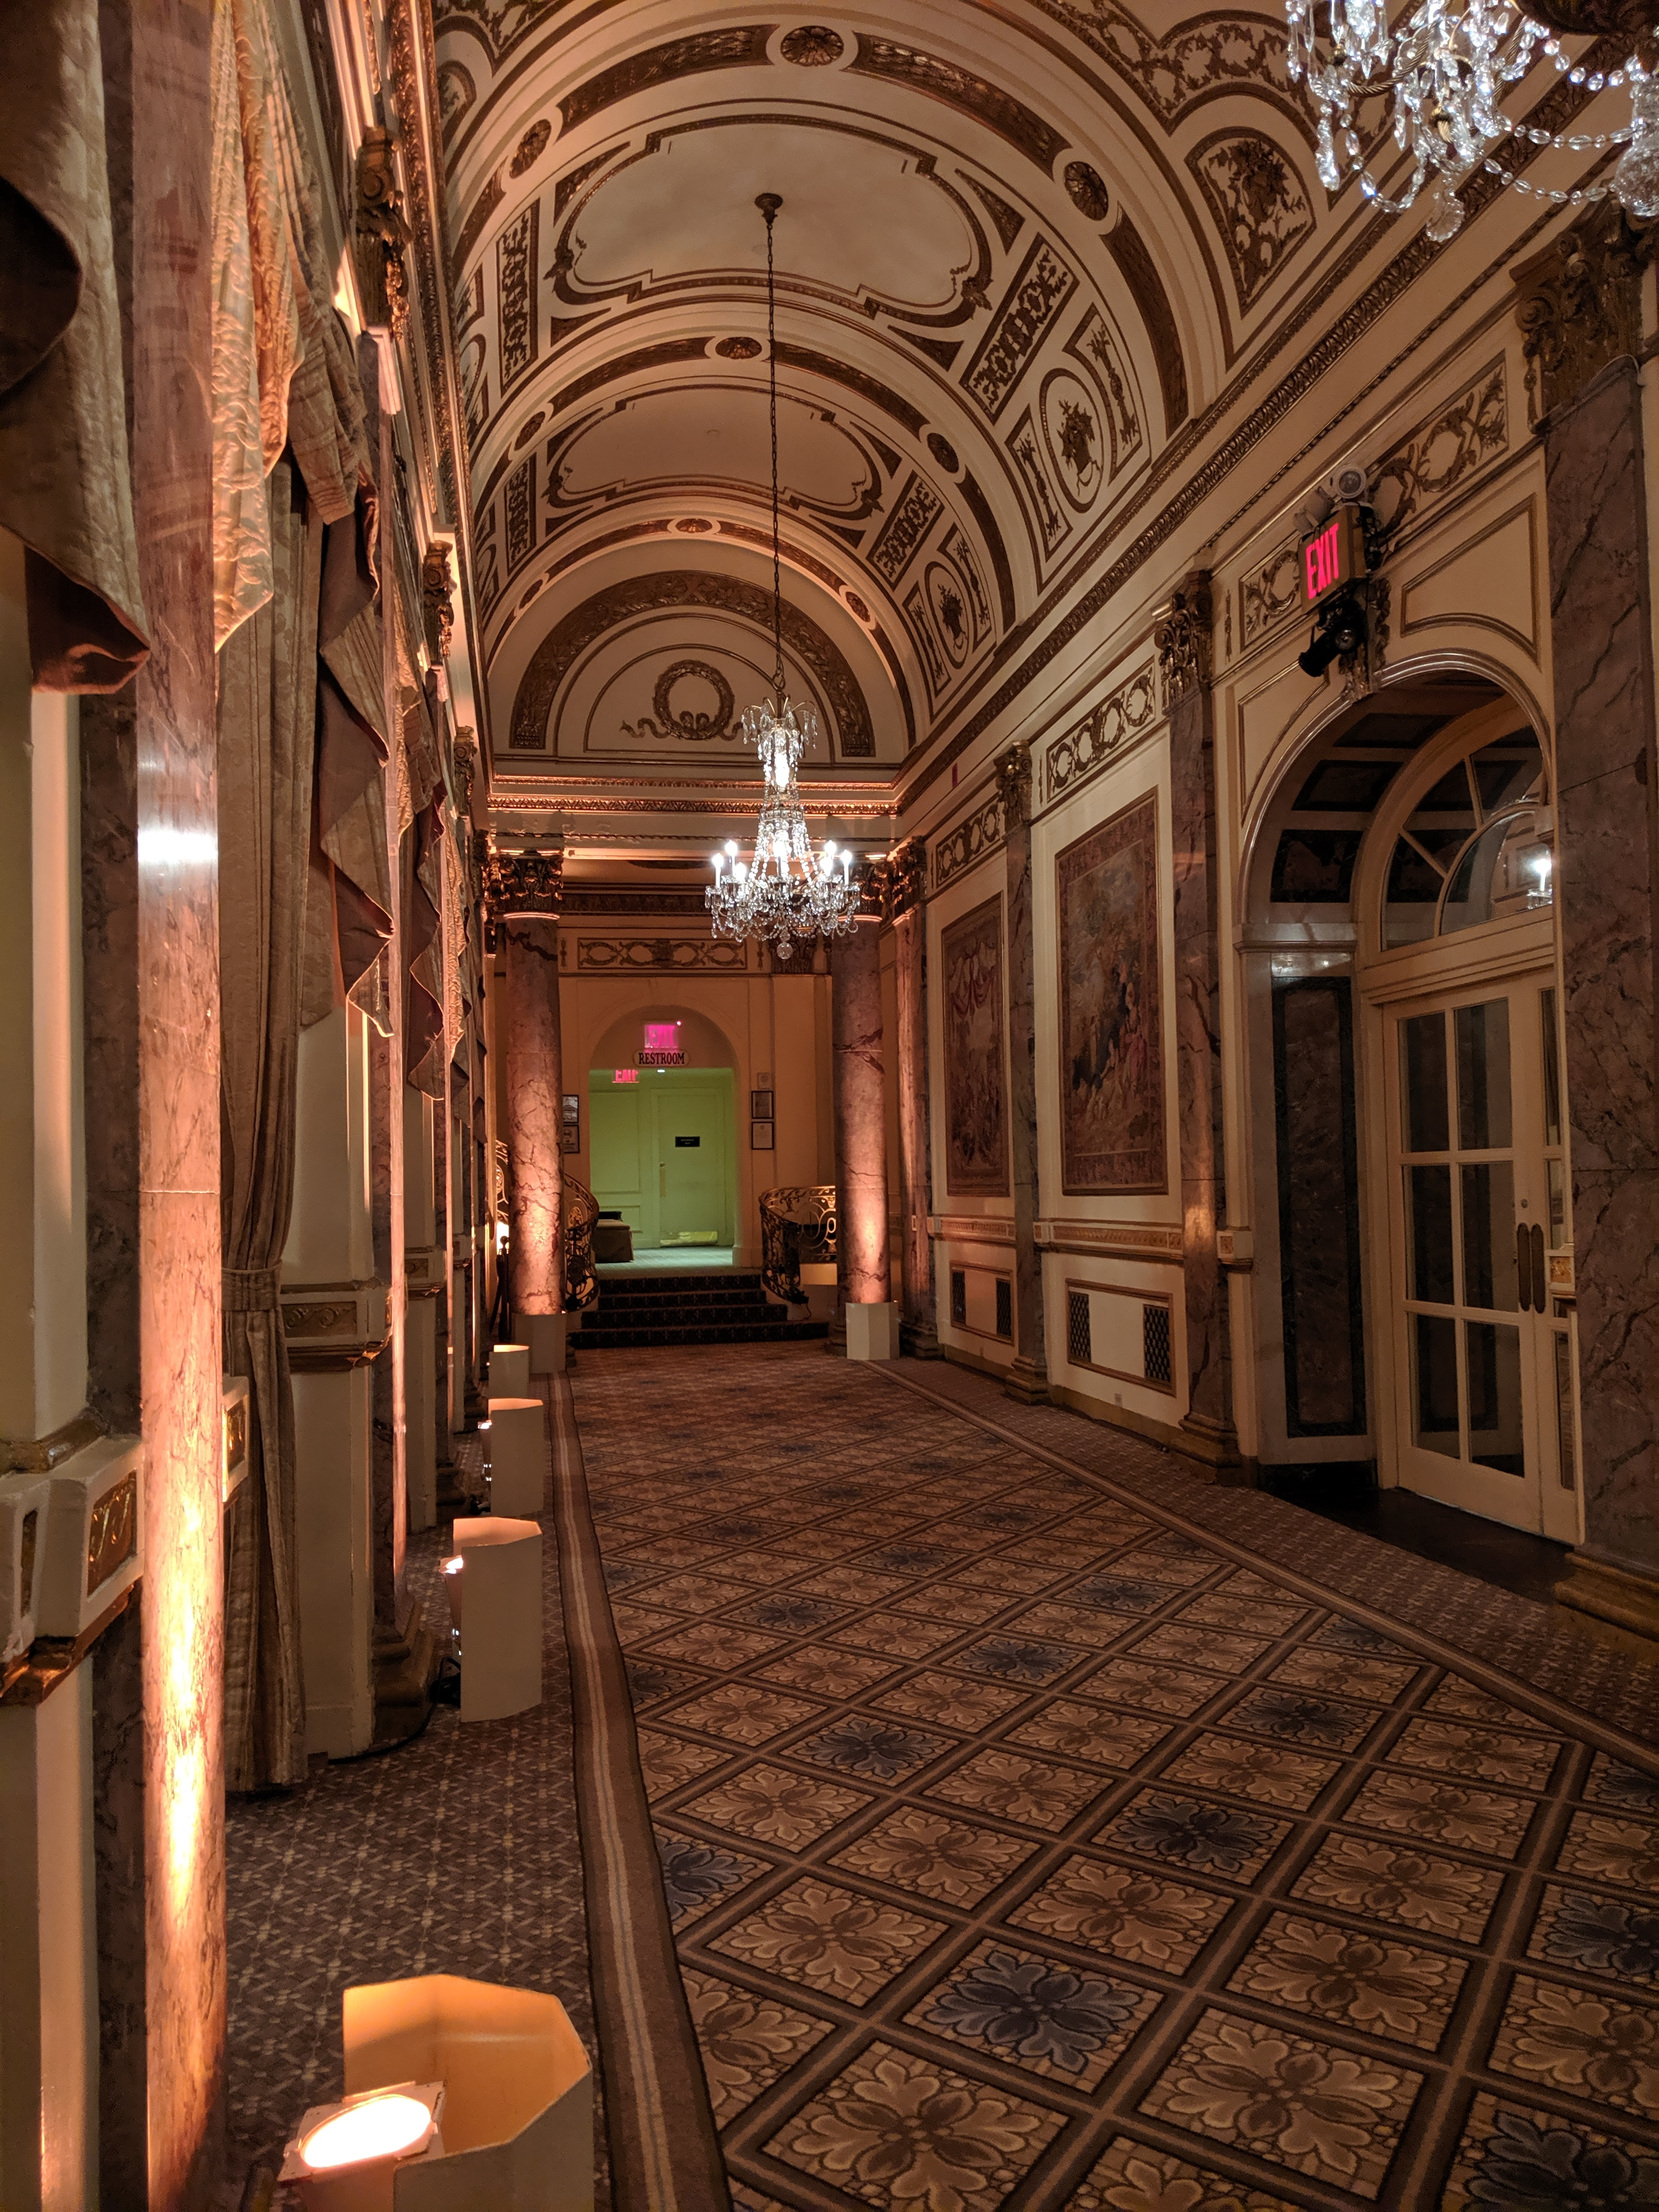 An entrance to the ballroom at the Plaza